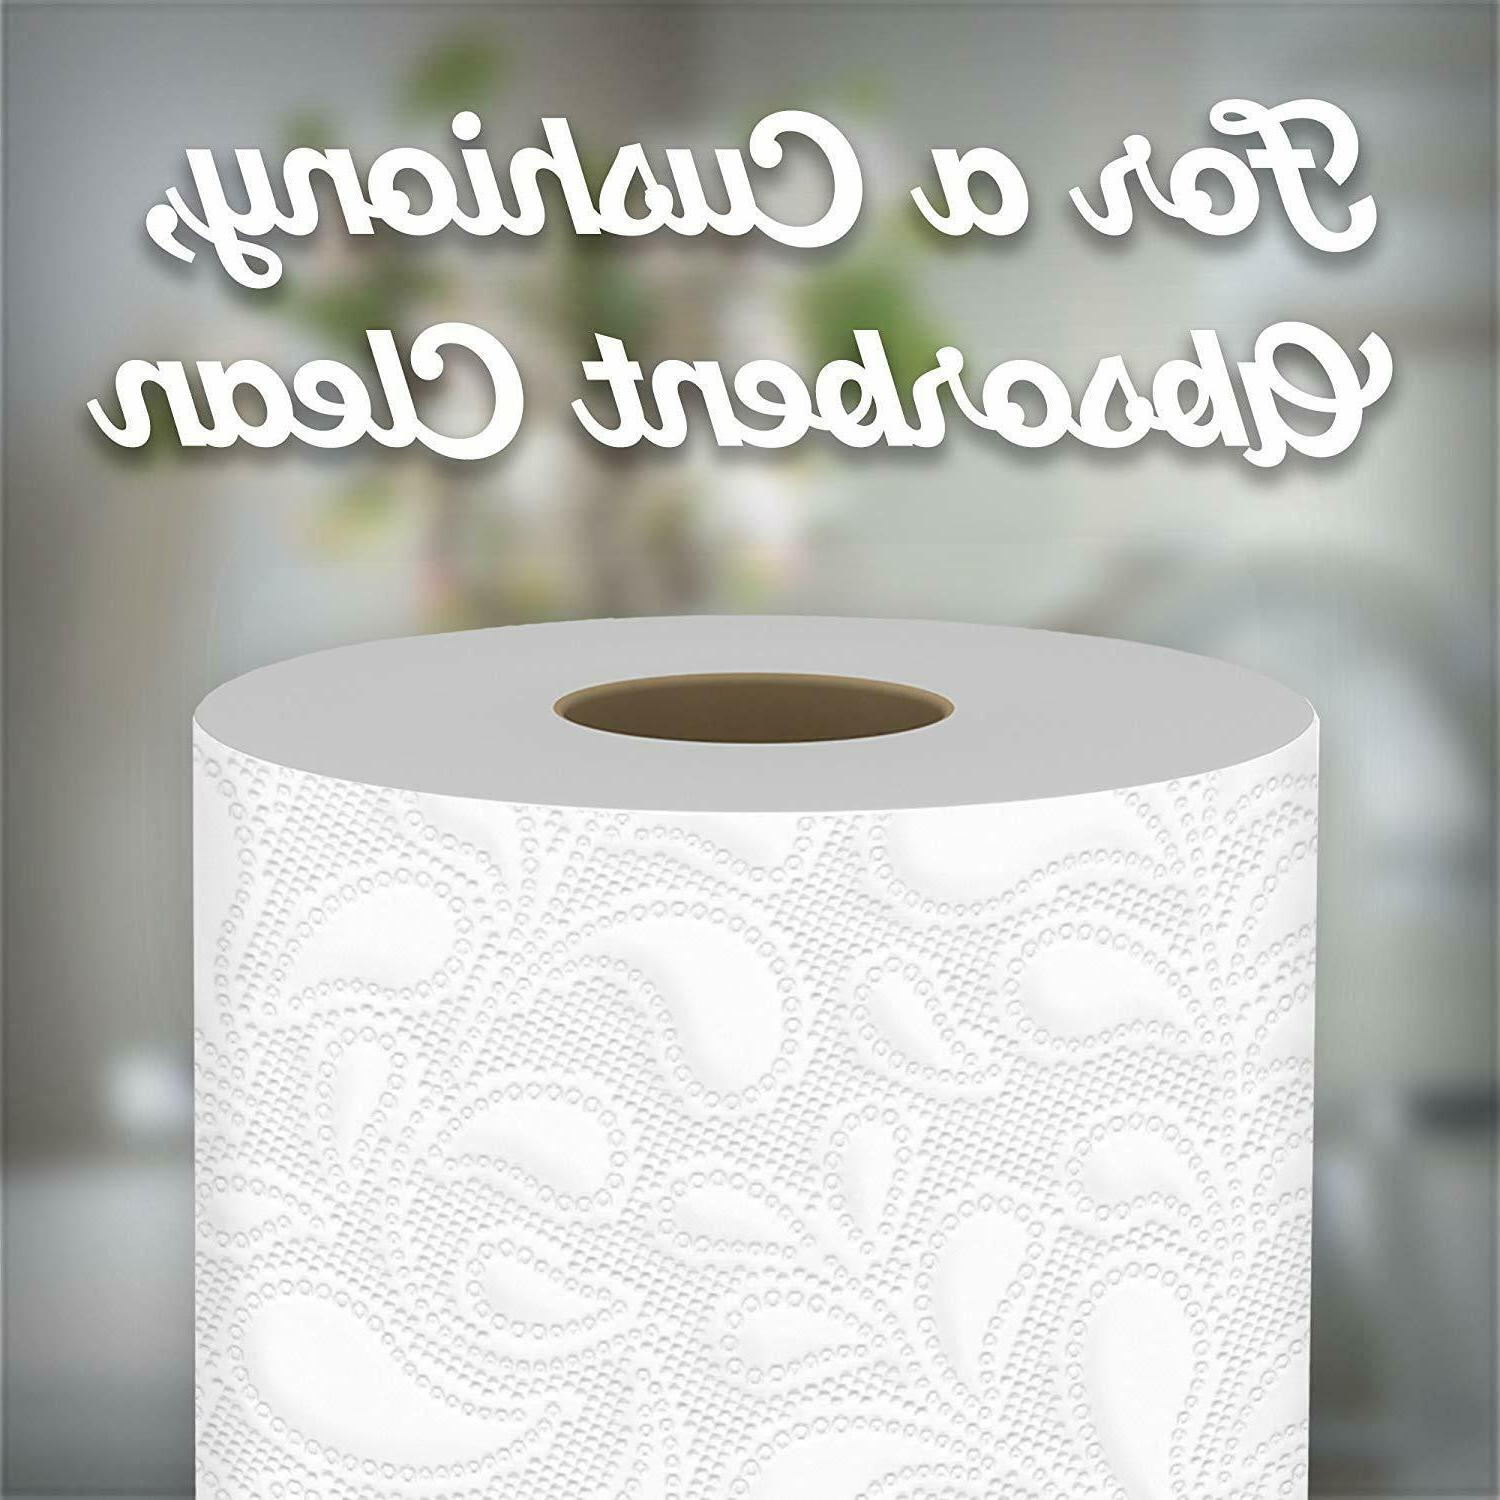 Quilted Northern Toilet 24 Rolls, 319 3-Ply Per